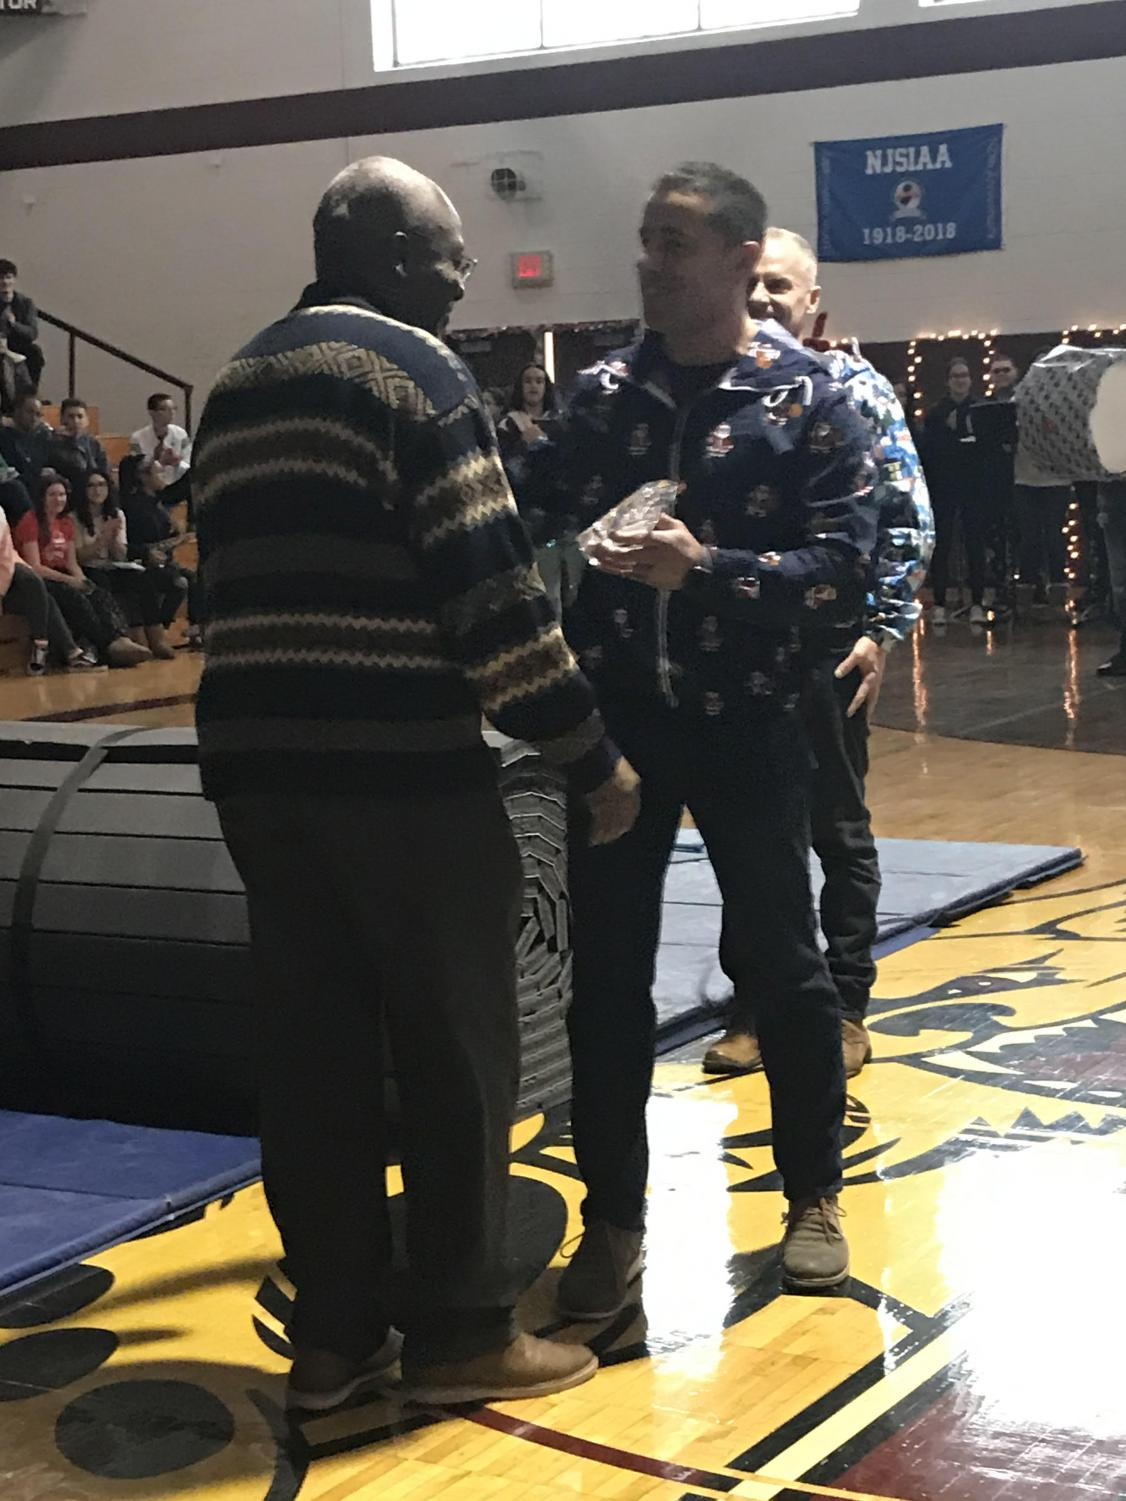 Mr. Gbaguidi is honored with the Governor's Professional of the Year award at the Winter Pep Rally